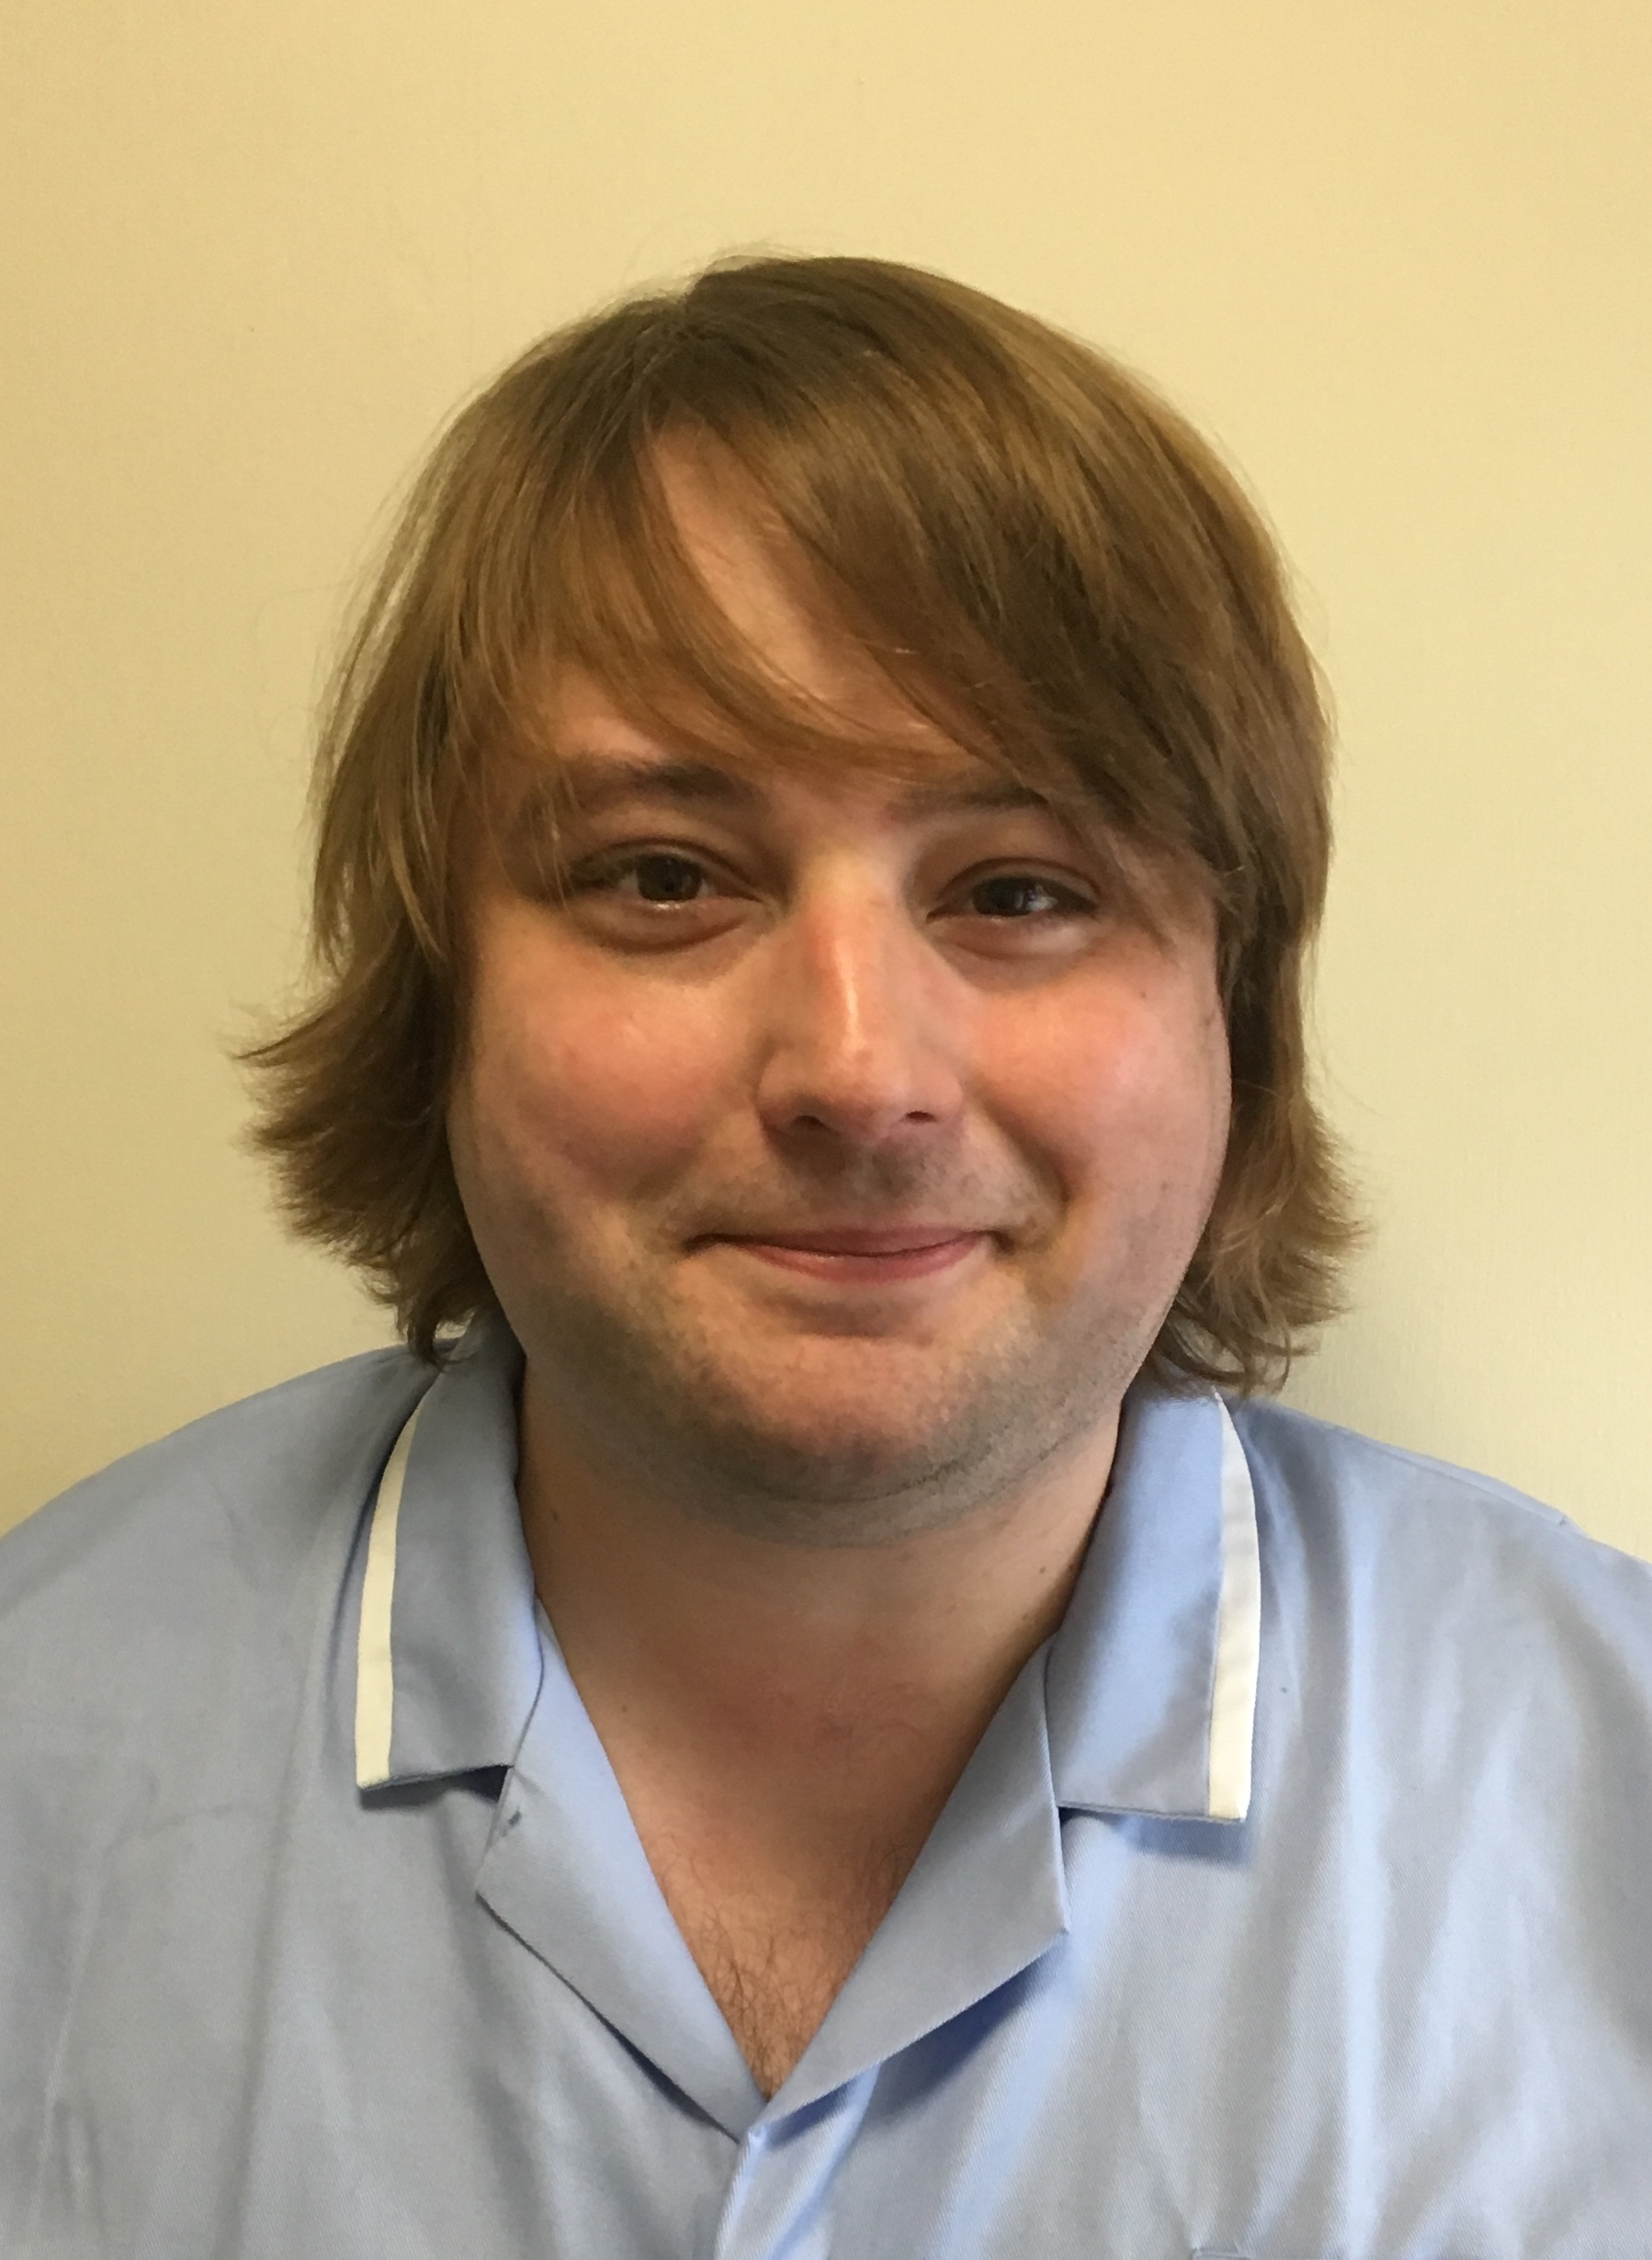 """ANTHONY HOMER -   Clinical Trials Assistant, Dorset County Hospital NHS Foundation Trust   """"EDGE: The Cornerstone of Connection"""""""